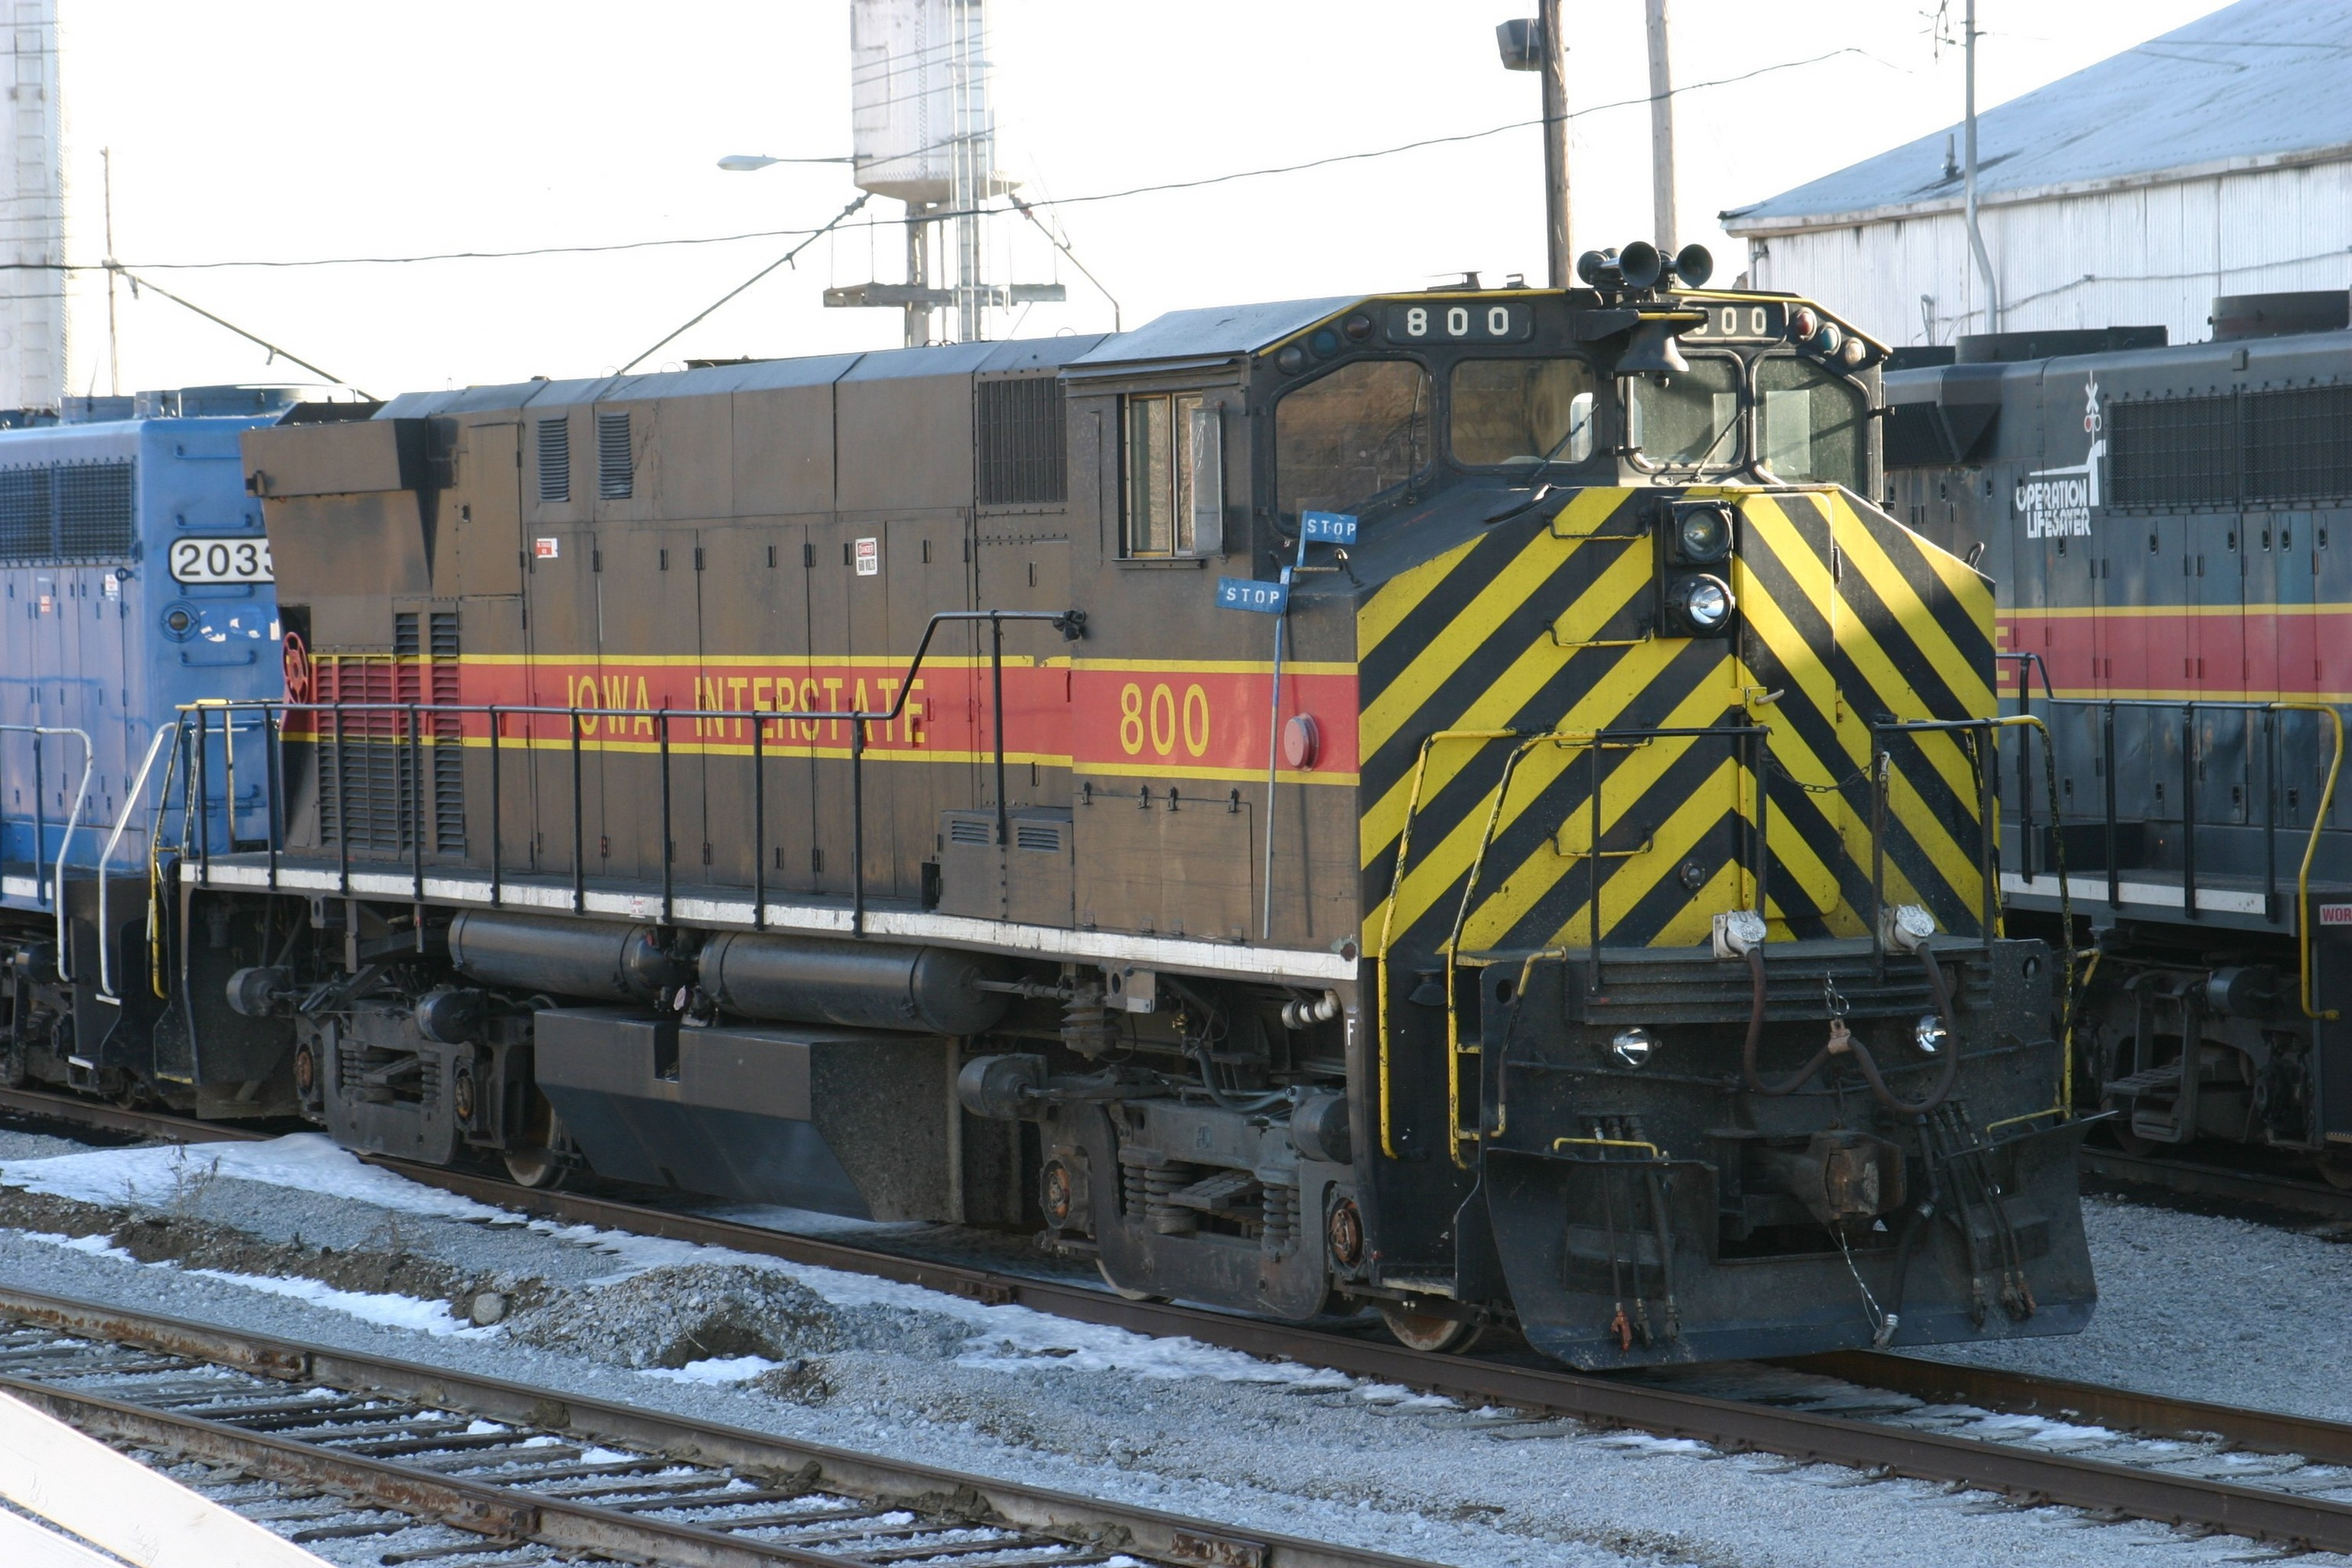 IAIS 800 at Council Bluffs, IA on 20-Dec-2003